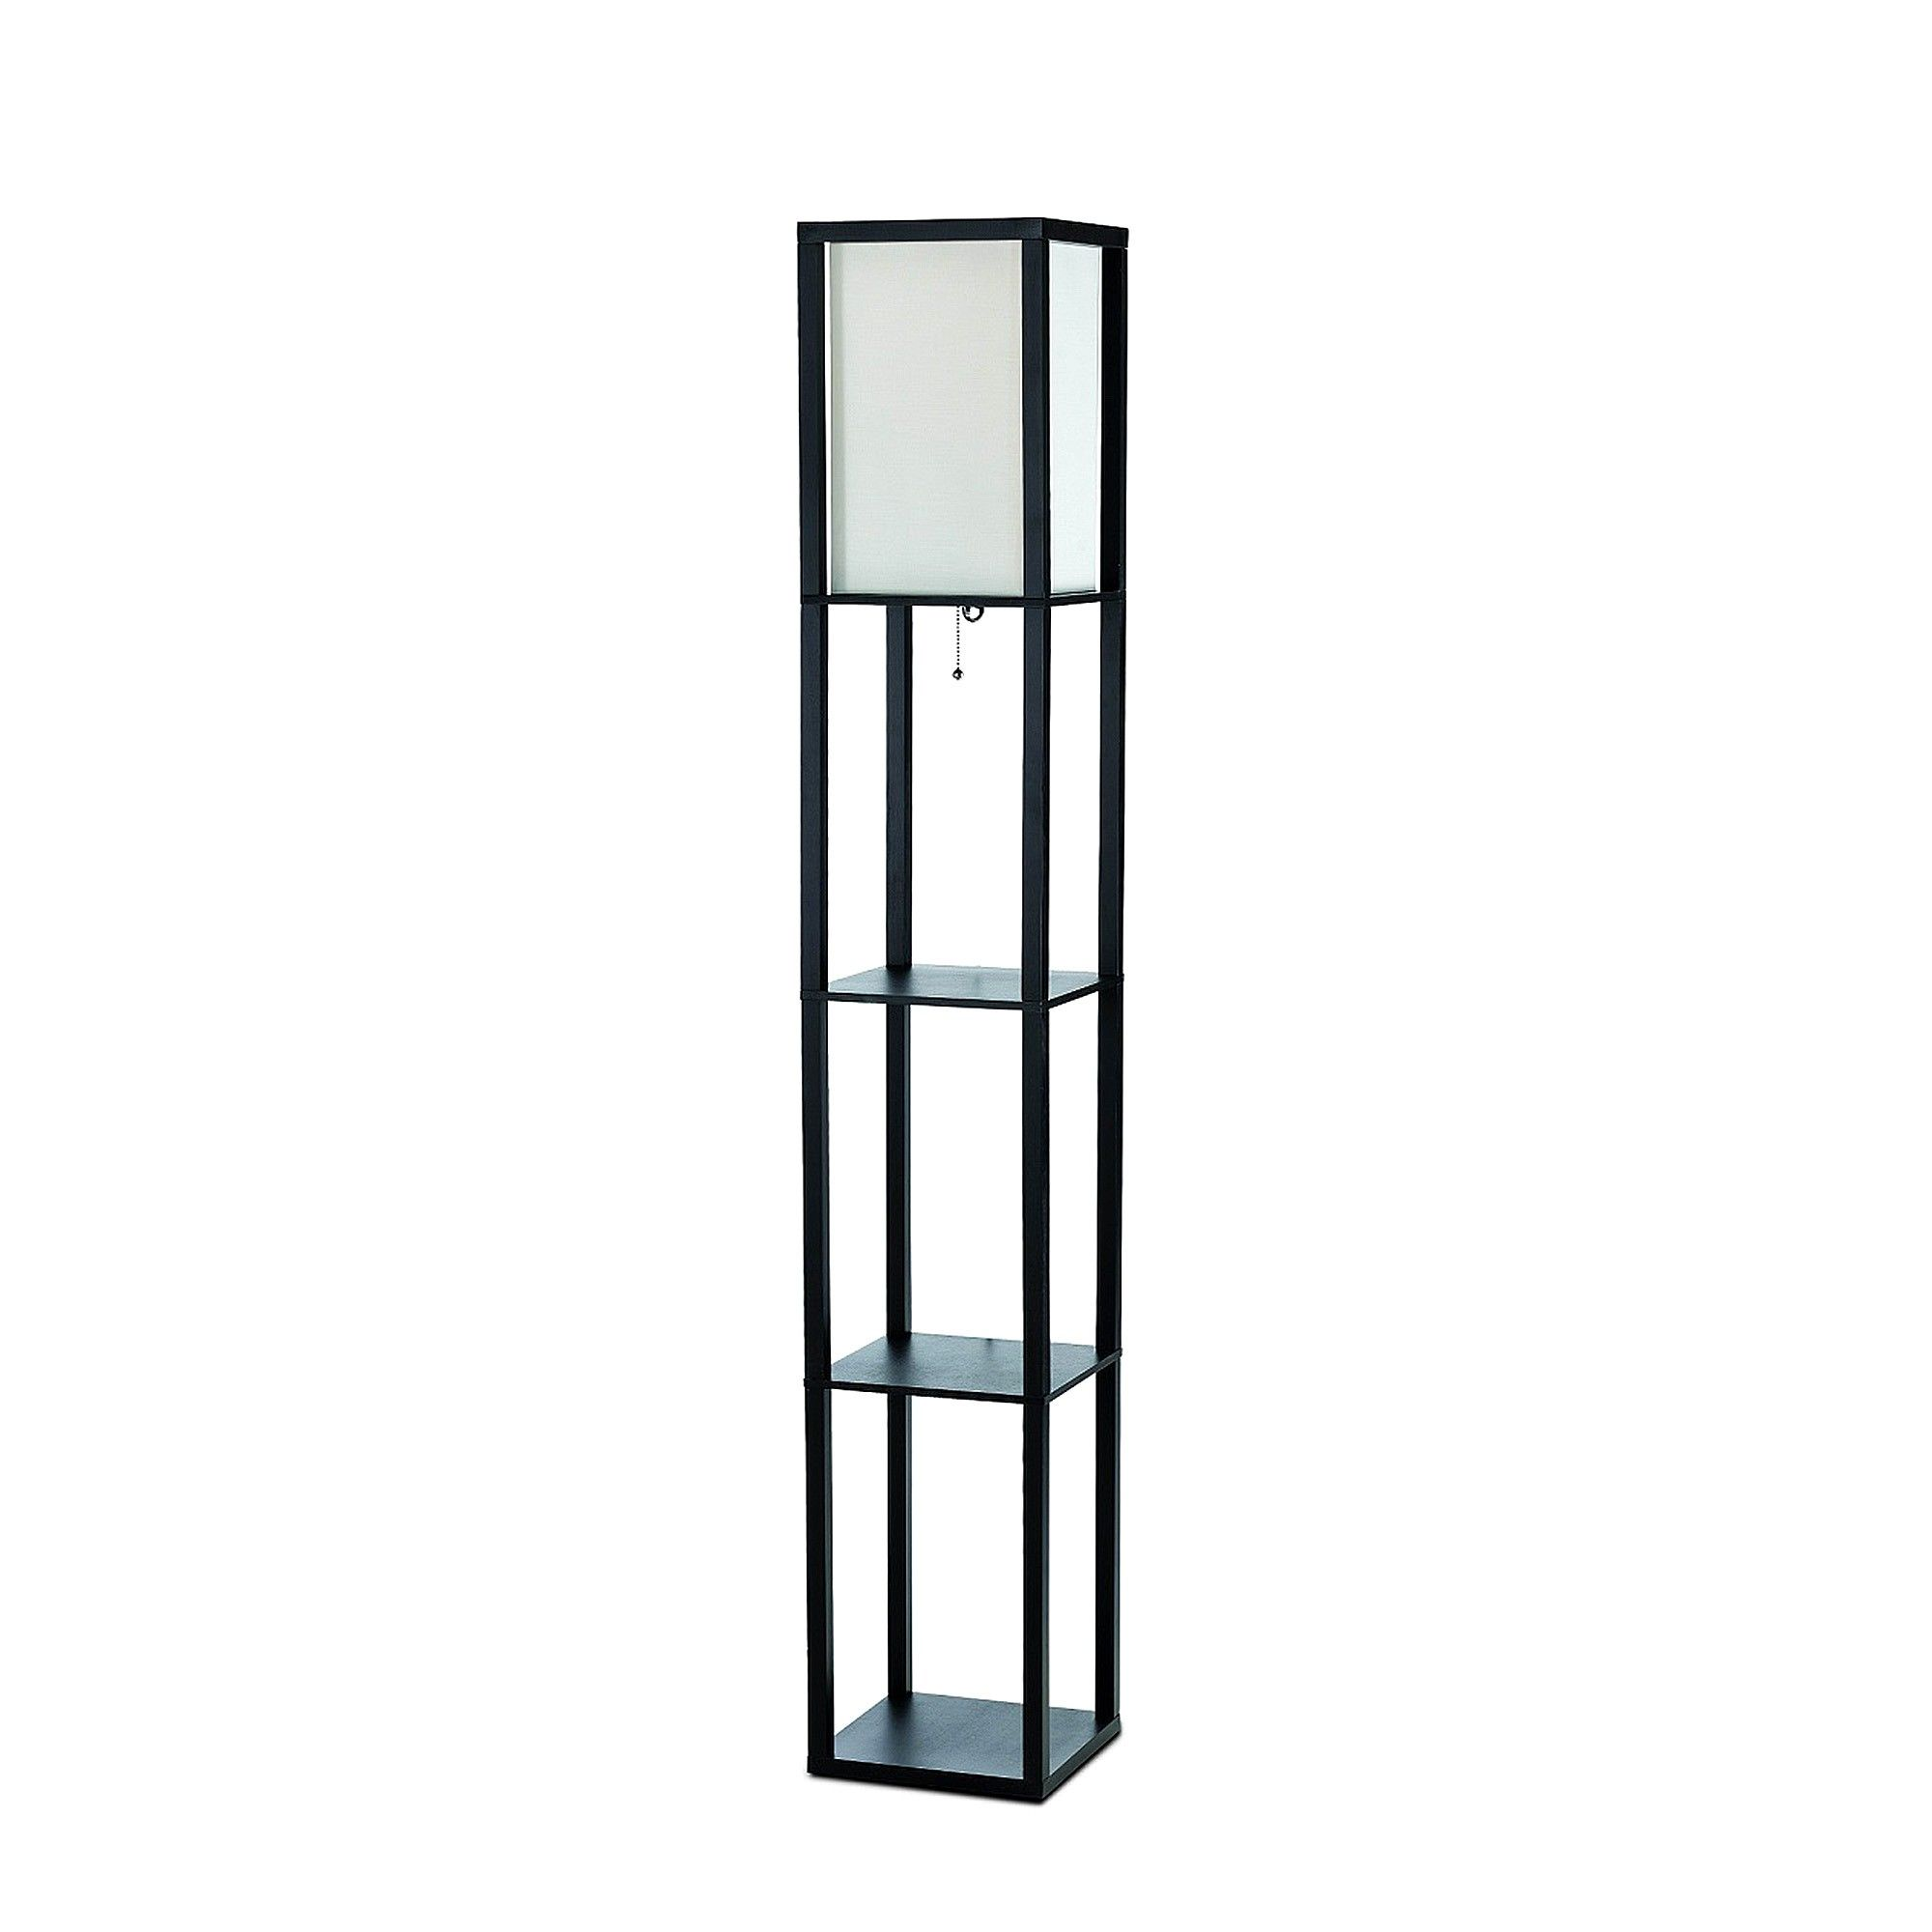 All The Rages Lf1014 Blk In 2019 Floor Lamp With Shelves Wood